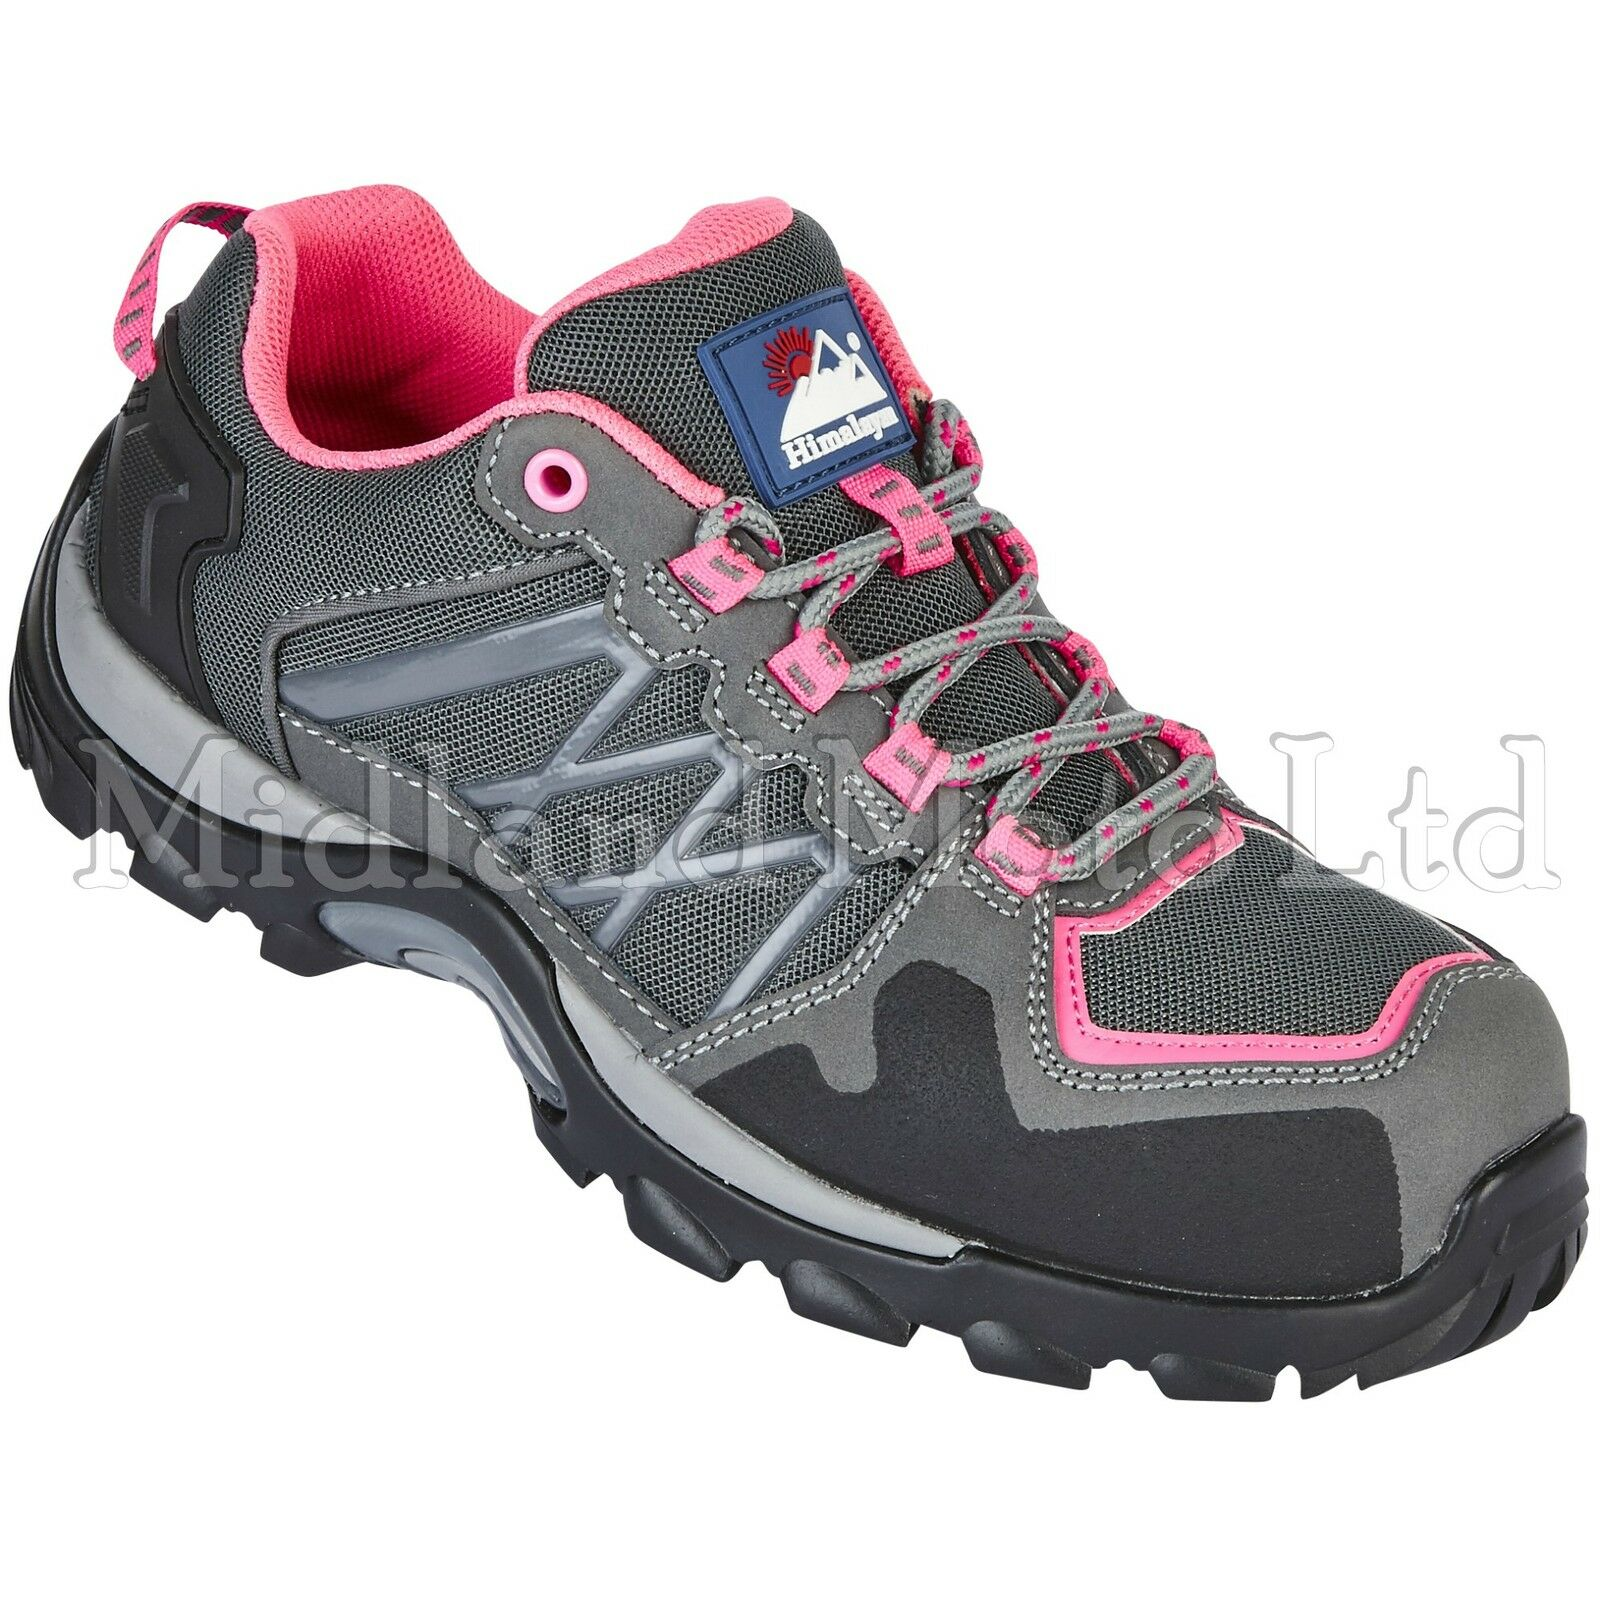 Himalayan Ladies Composite Toe Cap rose  Gris Metal Free Safety Trainers 4302